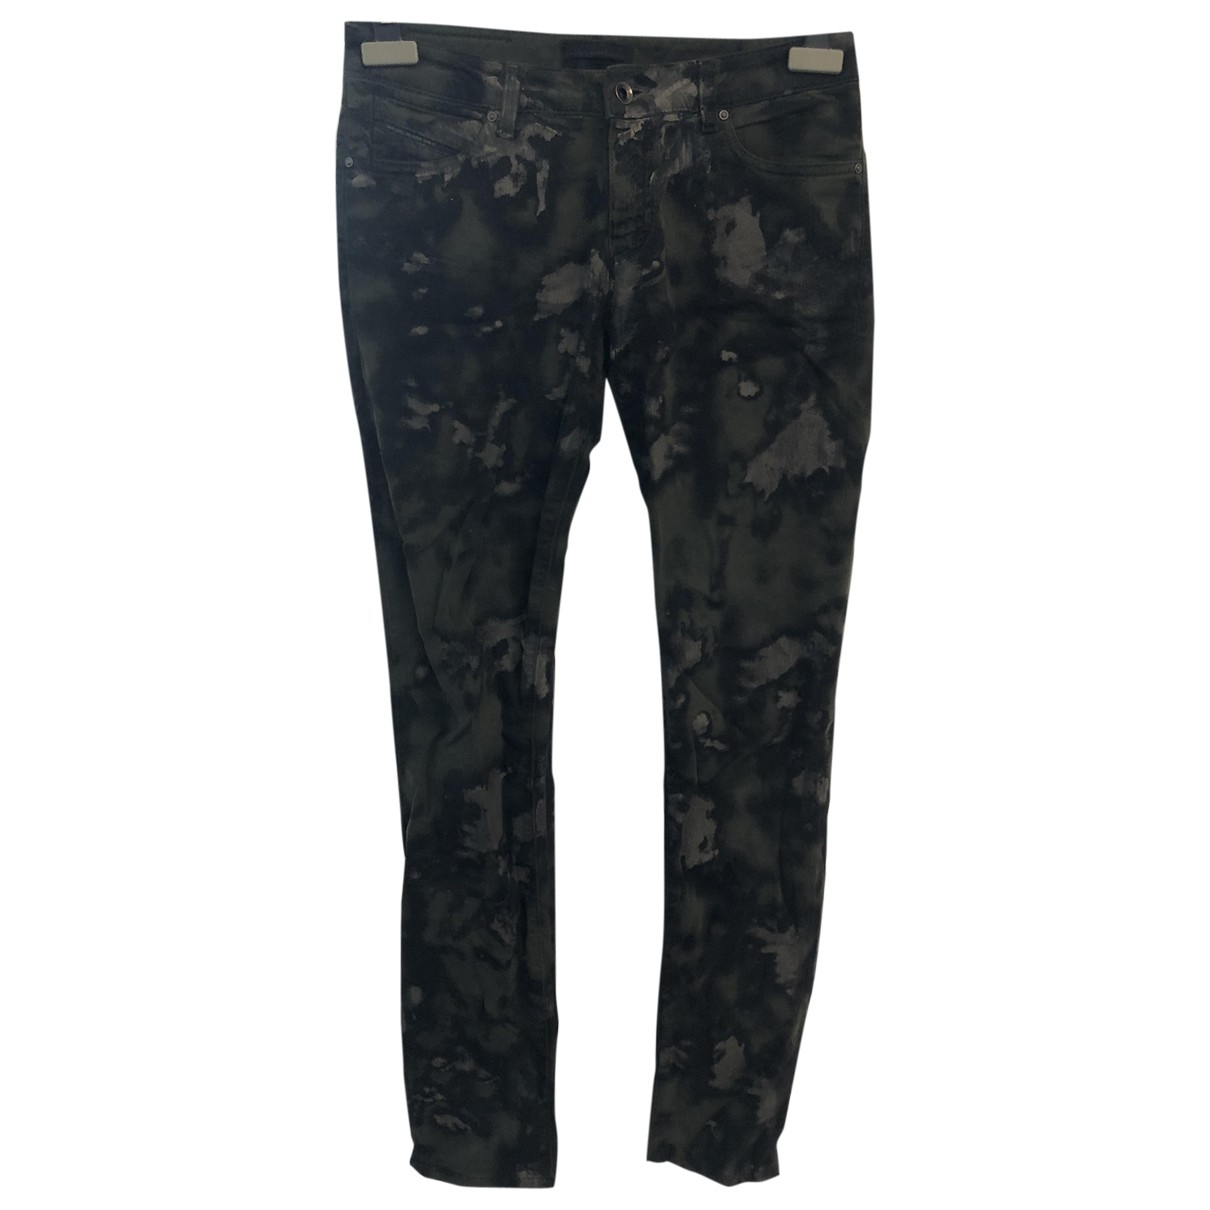 Diesel Black Gold \N Multicolour Cotton - elasthane Jeans for Women 28 US